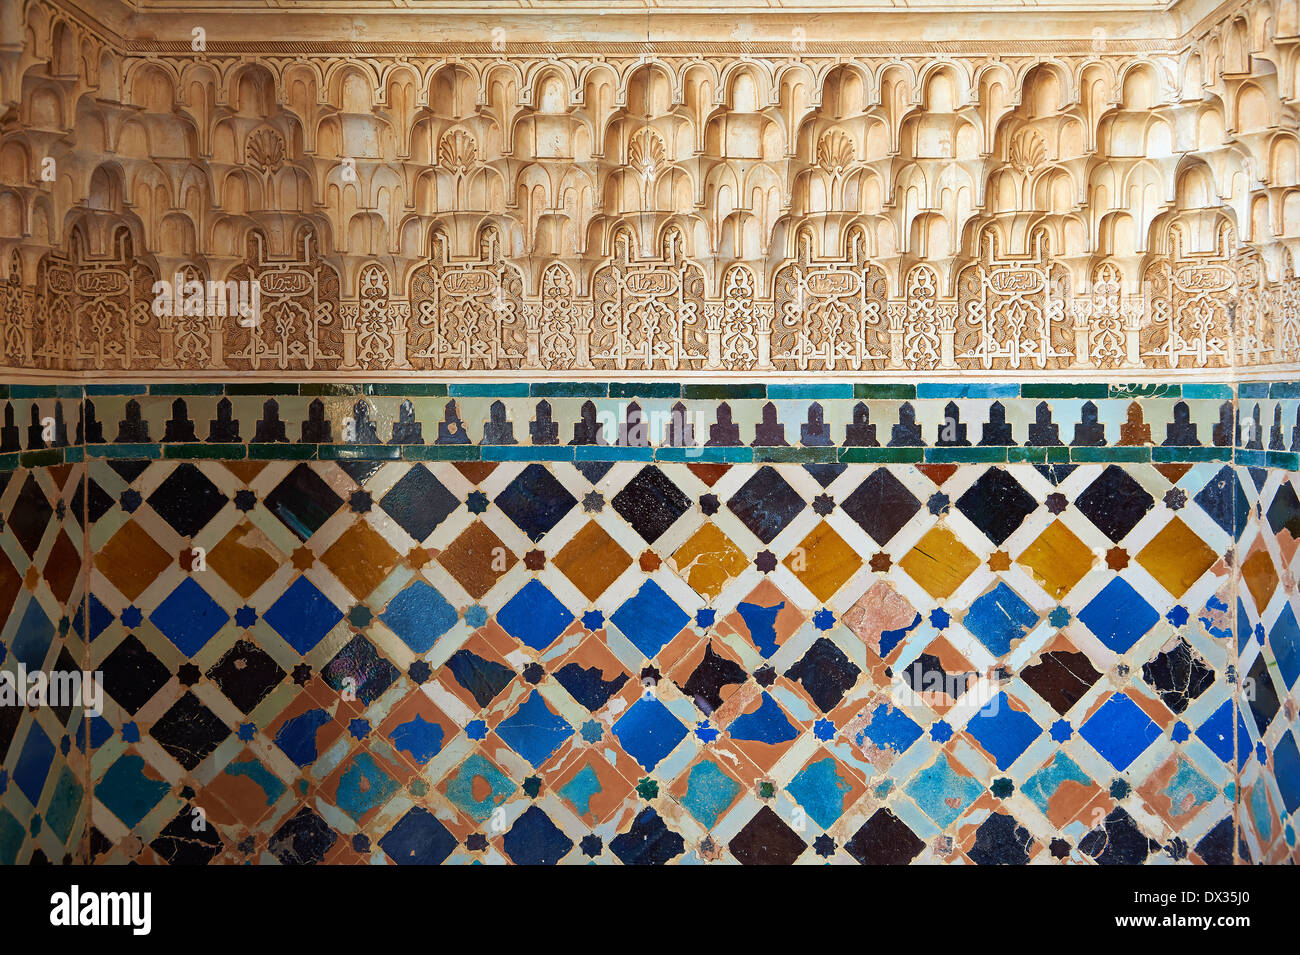 Muslim ceramic tiles stock photos muslim ceramic tiles stock moorish arabesque ceramic tiles sculpted plasterwork of the palacios nazaries alhambra granada andalusia dailygadgetfo Images